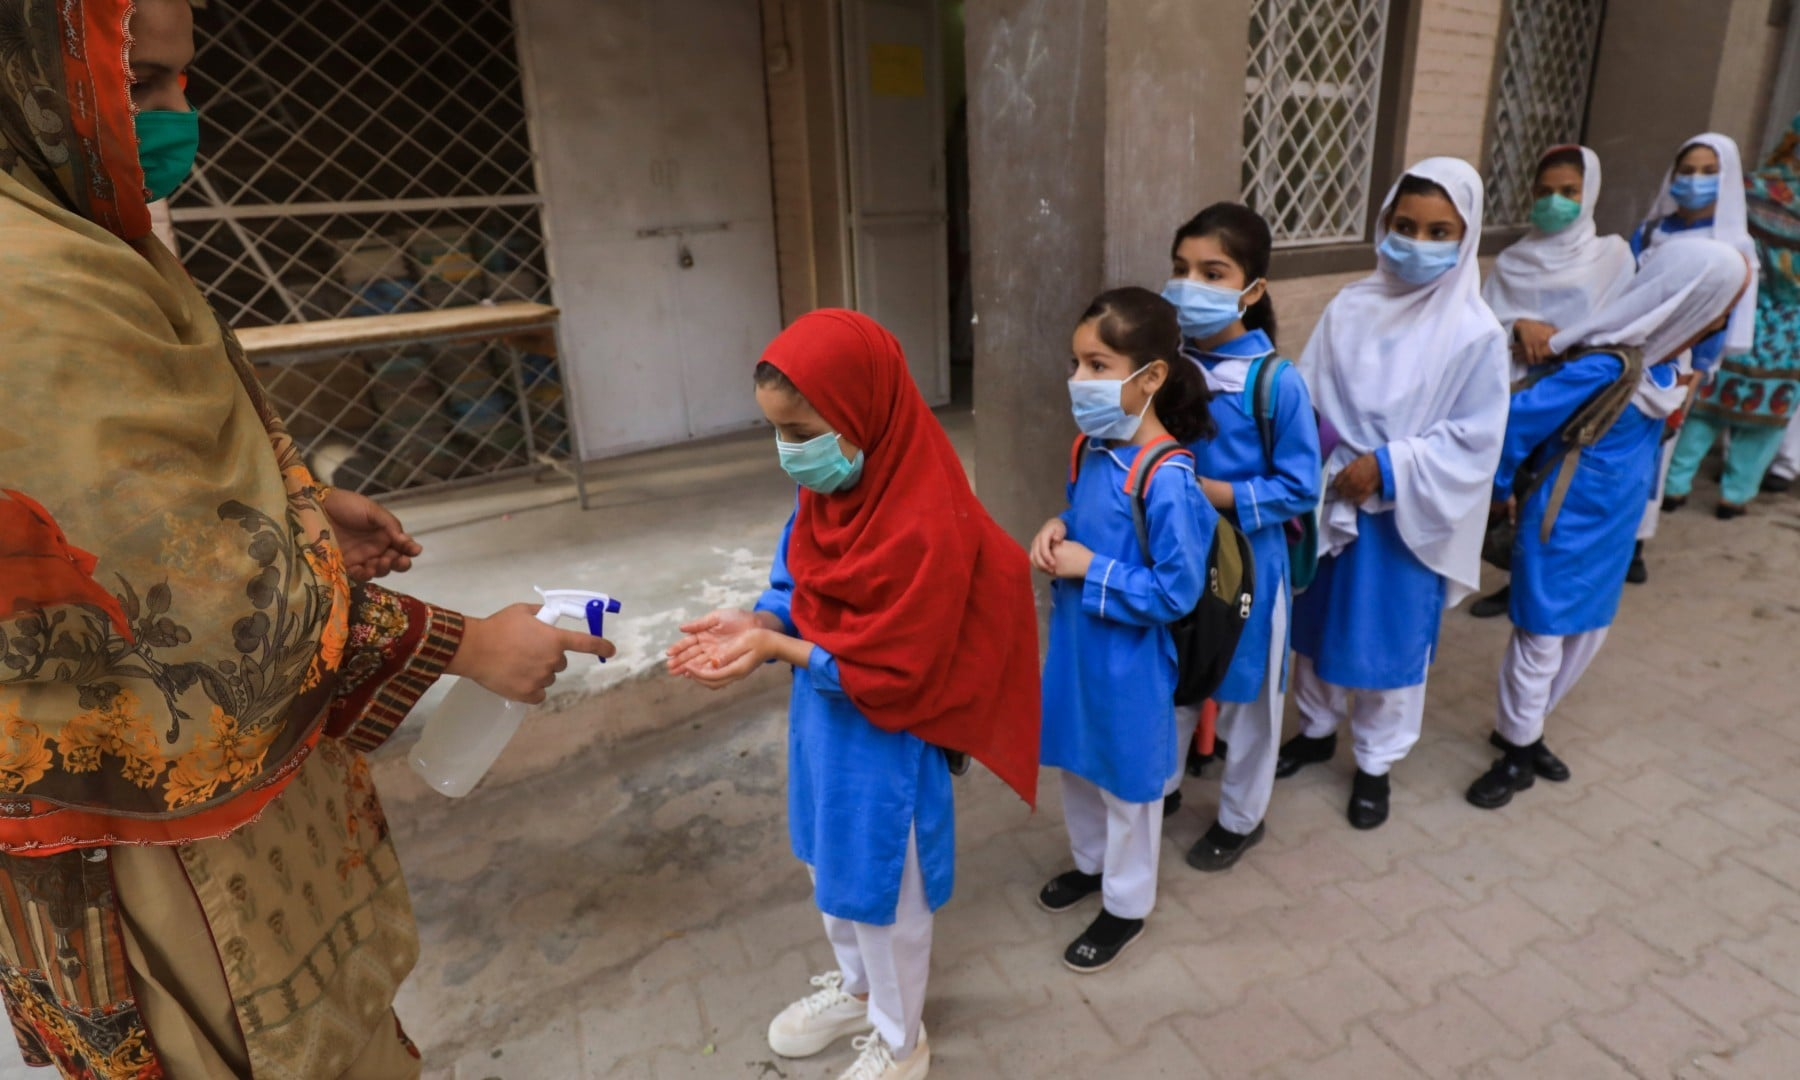 Students wear protective masks as they get their hands sanitised before entering a class in Peshawar on September 30. — Reuters